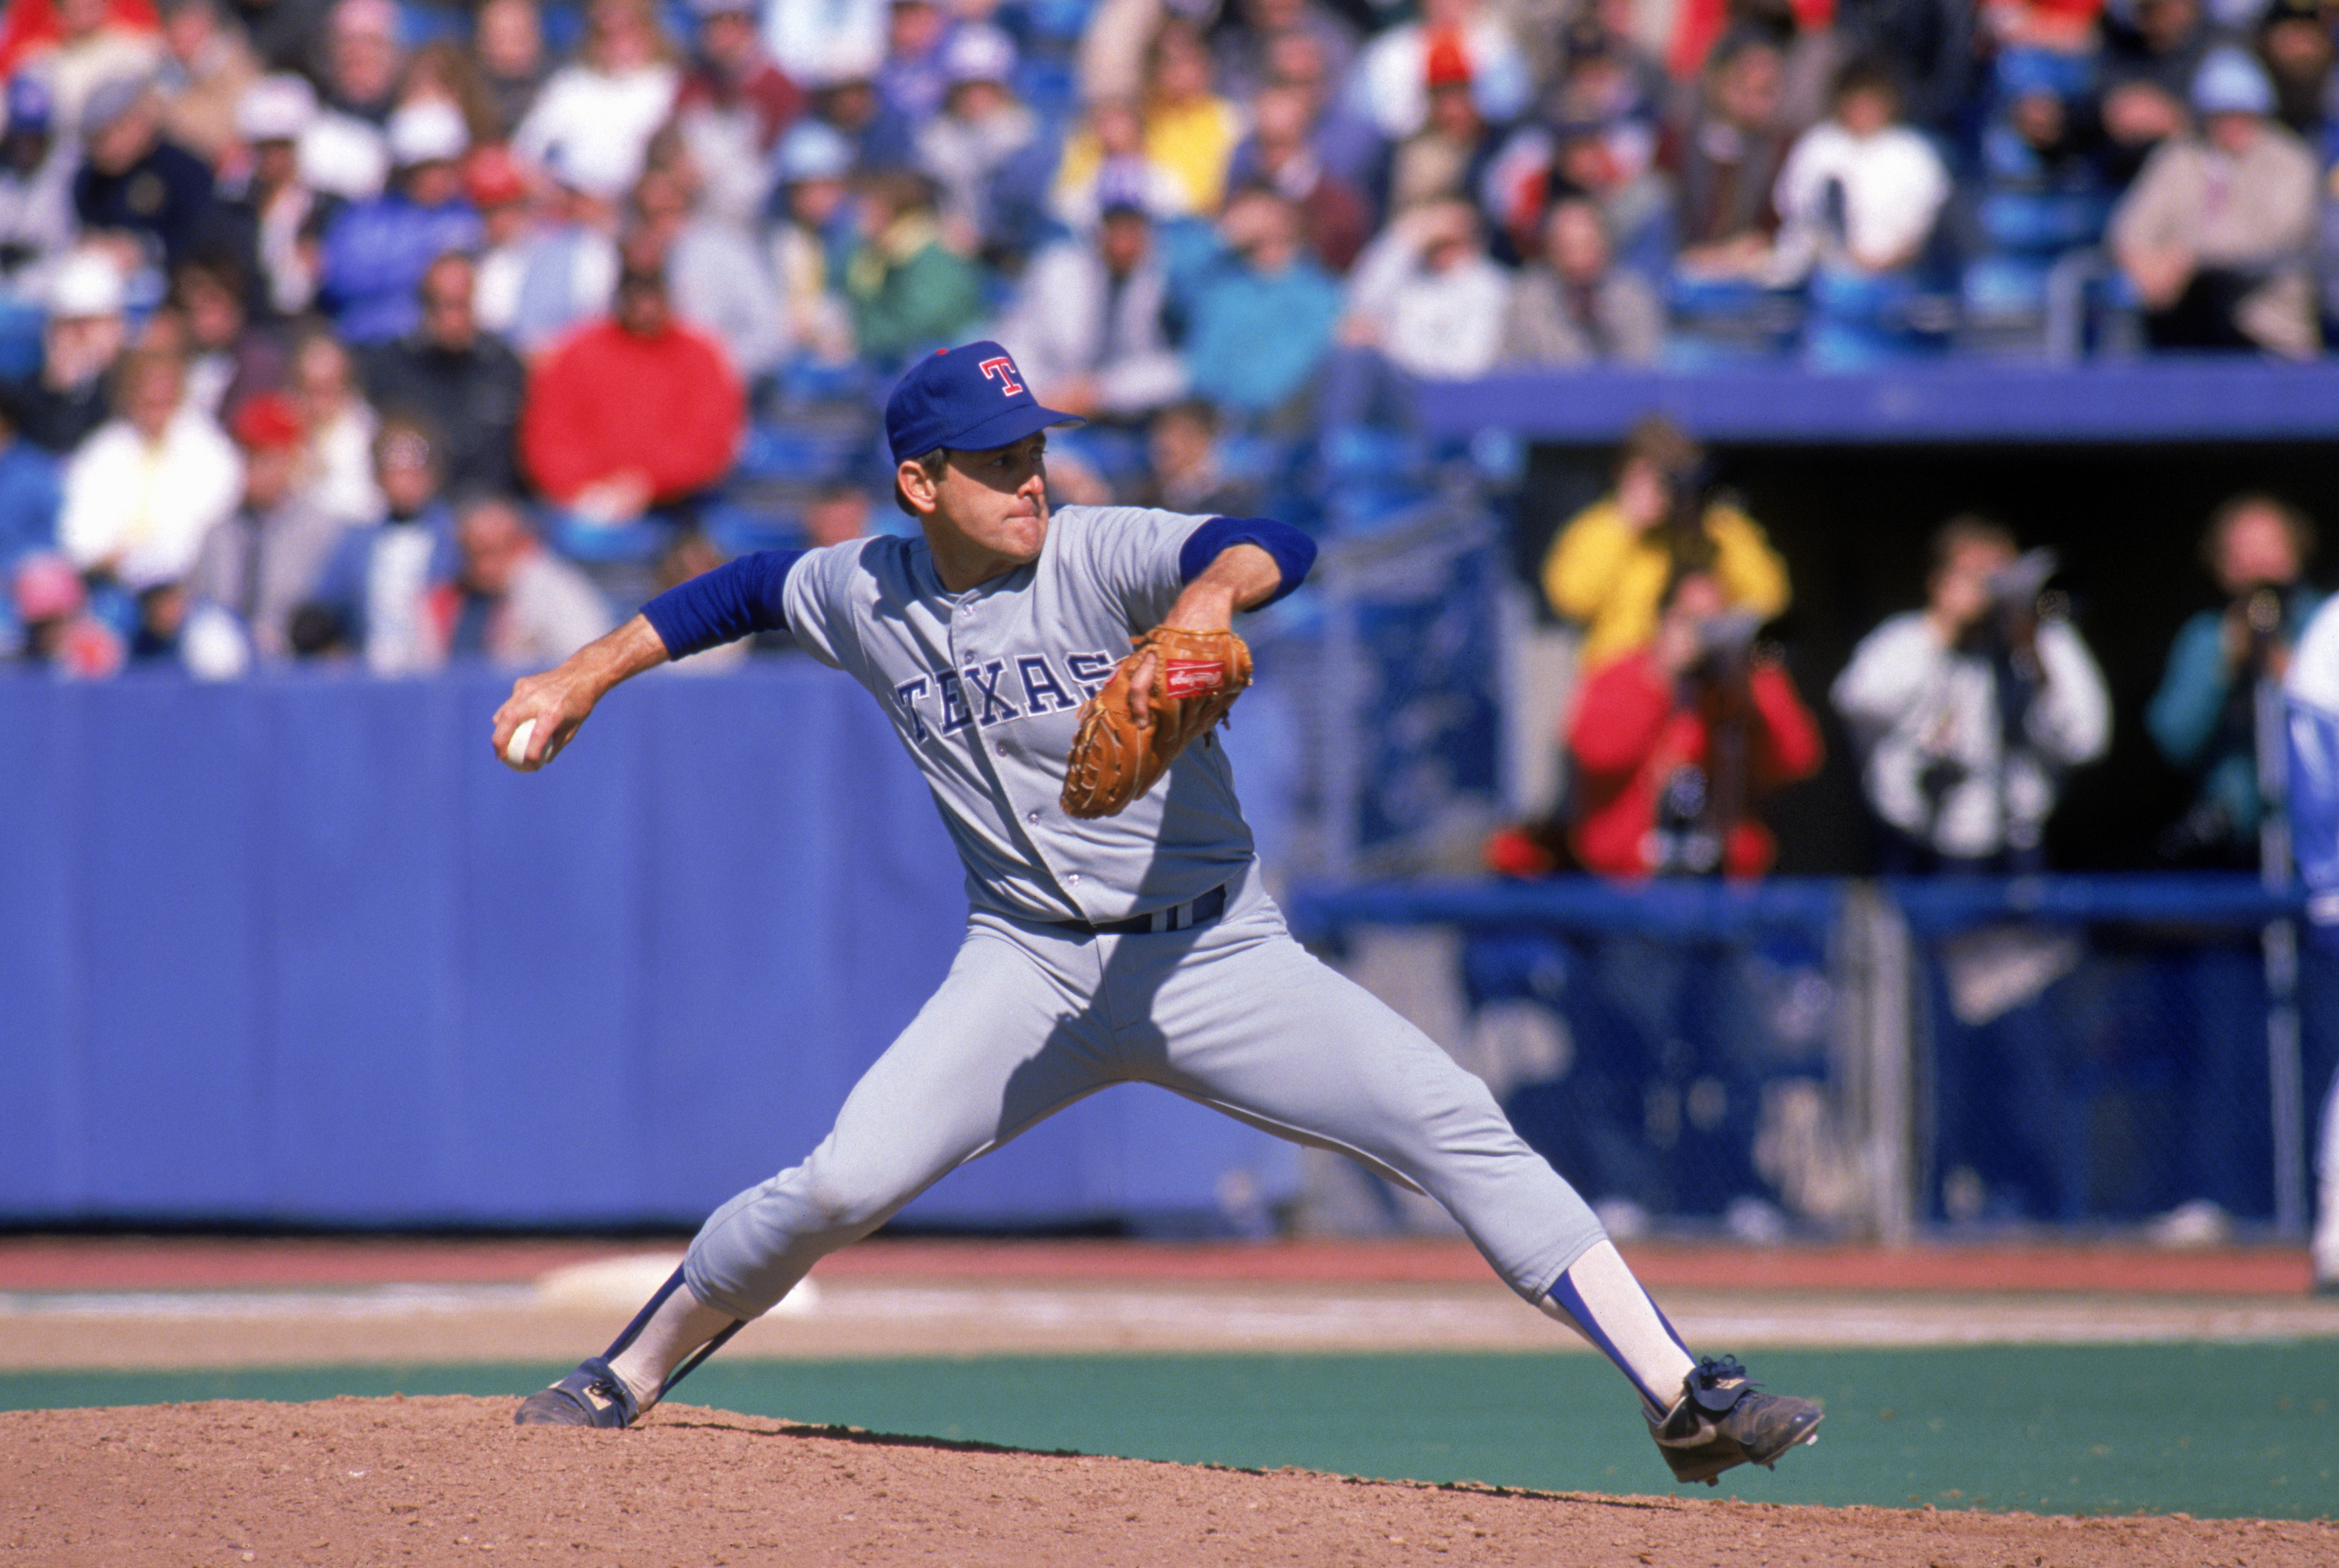 TORONTO - 1989:  Nolan Ryan #34 of the Texas Rangers pitches during the 1989 season against the Toronto Blue Jays at Skydome in Toronto, Ontario, Canada.  (Photo by Rick Stewart/Getty Images)